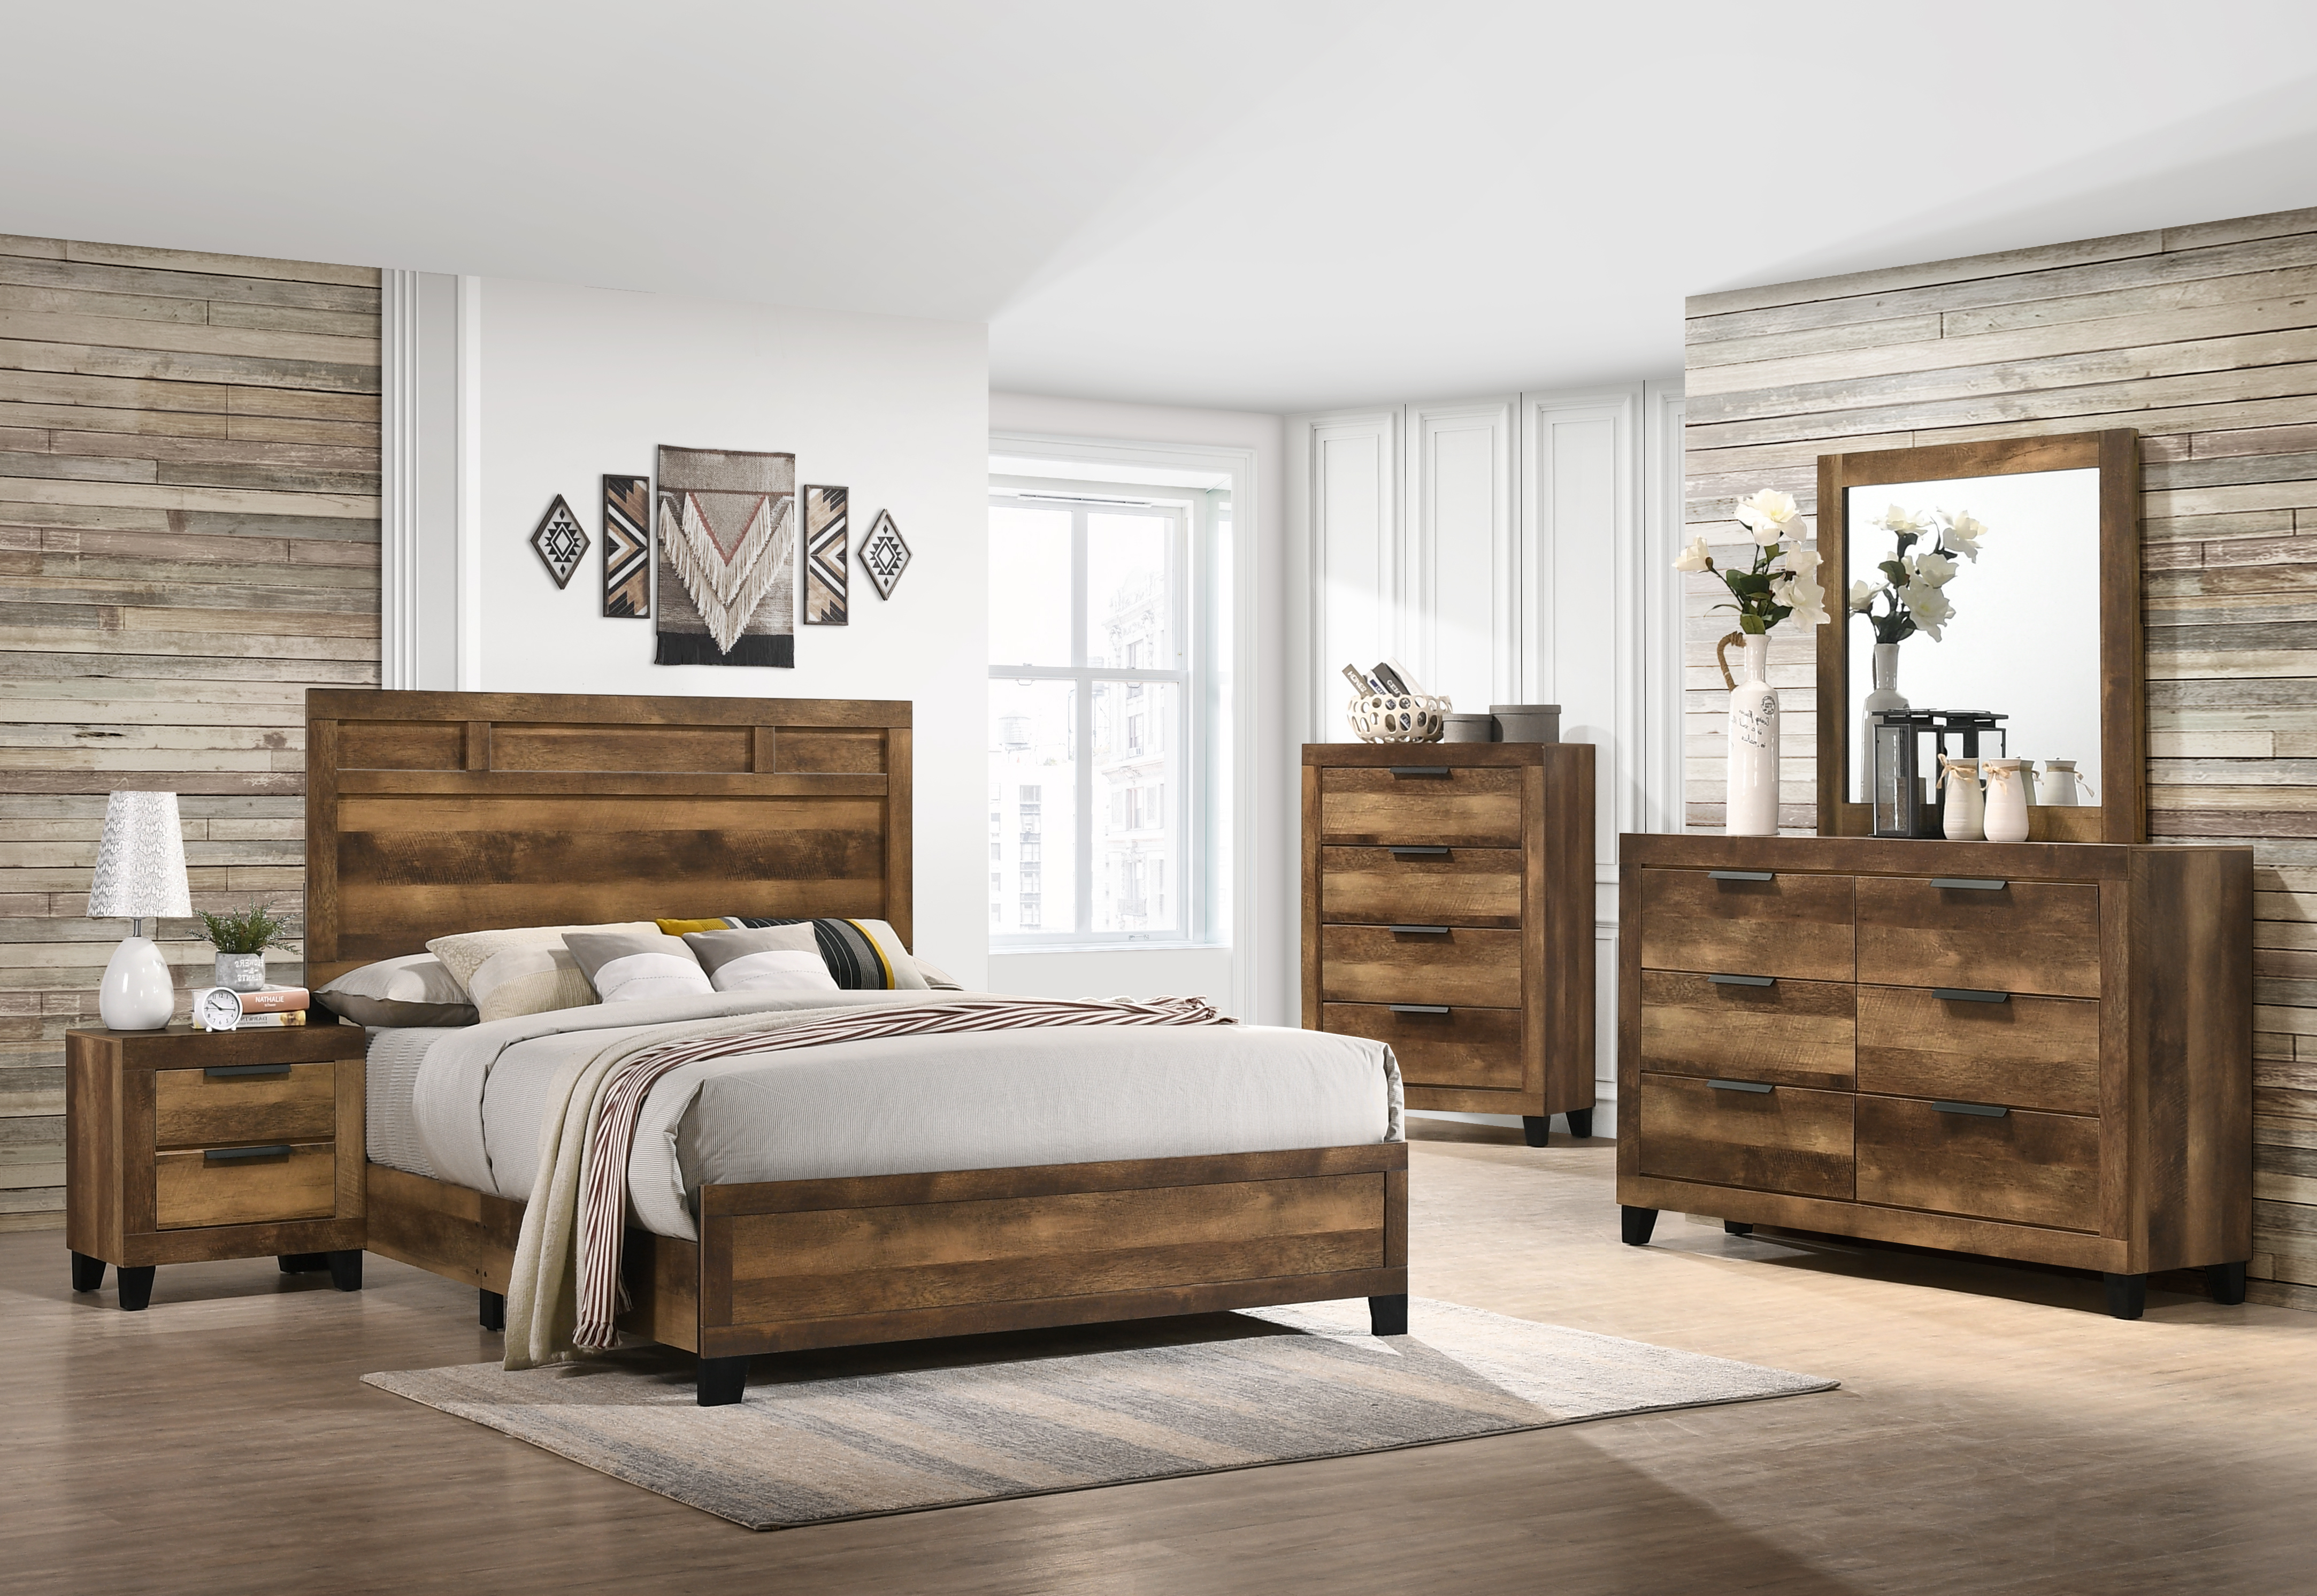 Morales King Bedroom Group by Acme Furniture at Dream Home Interiors